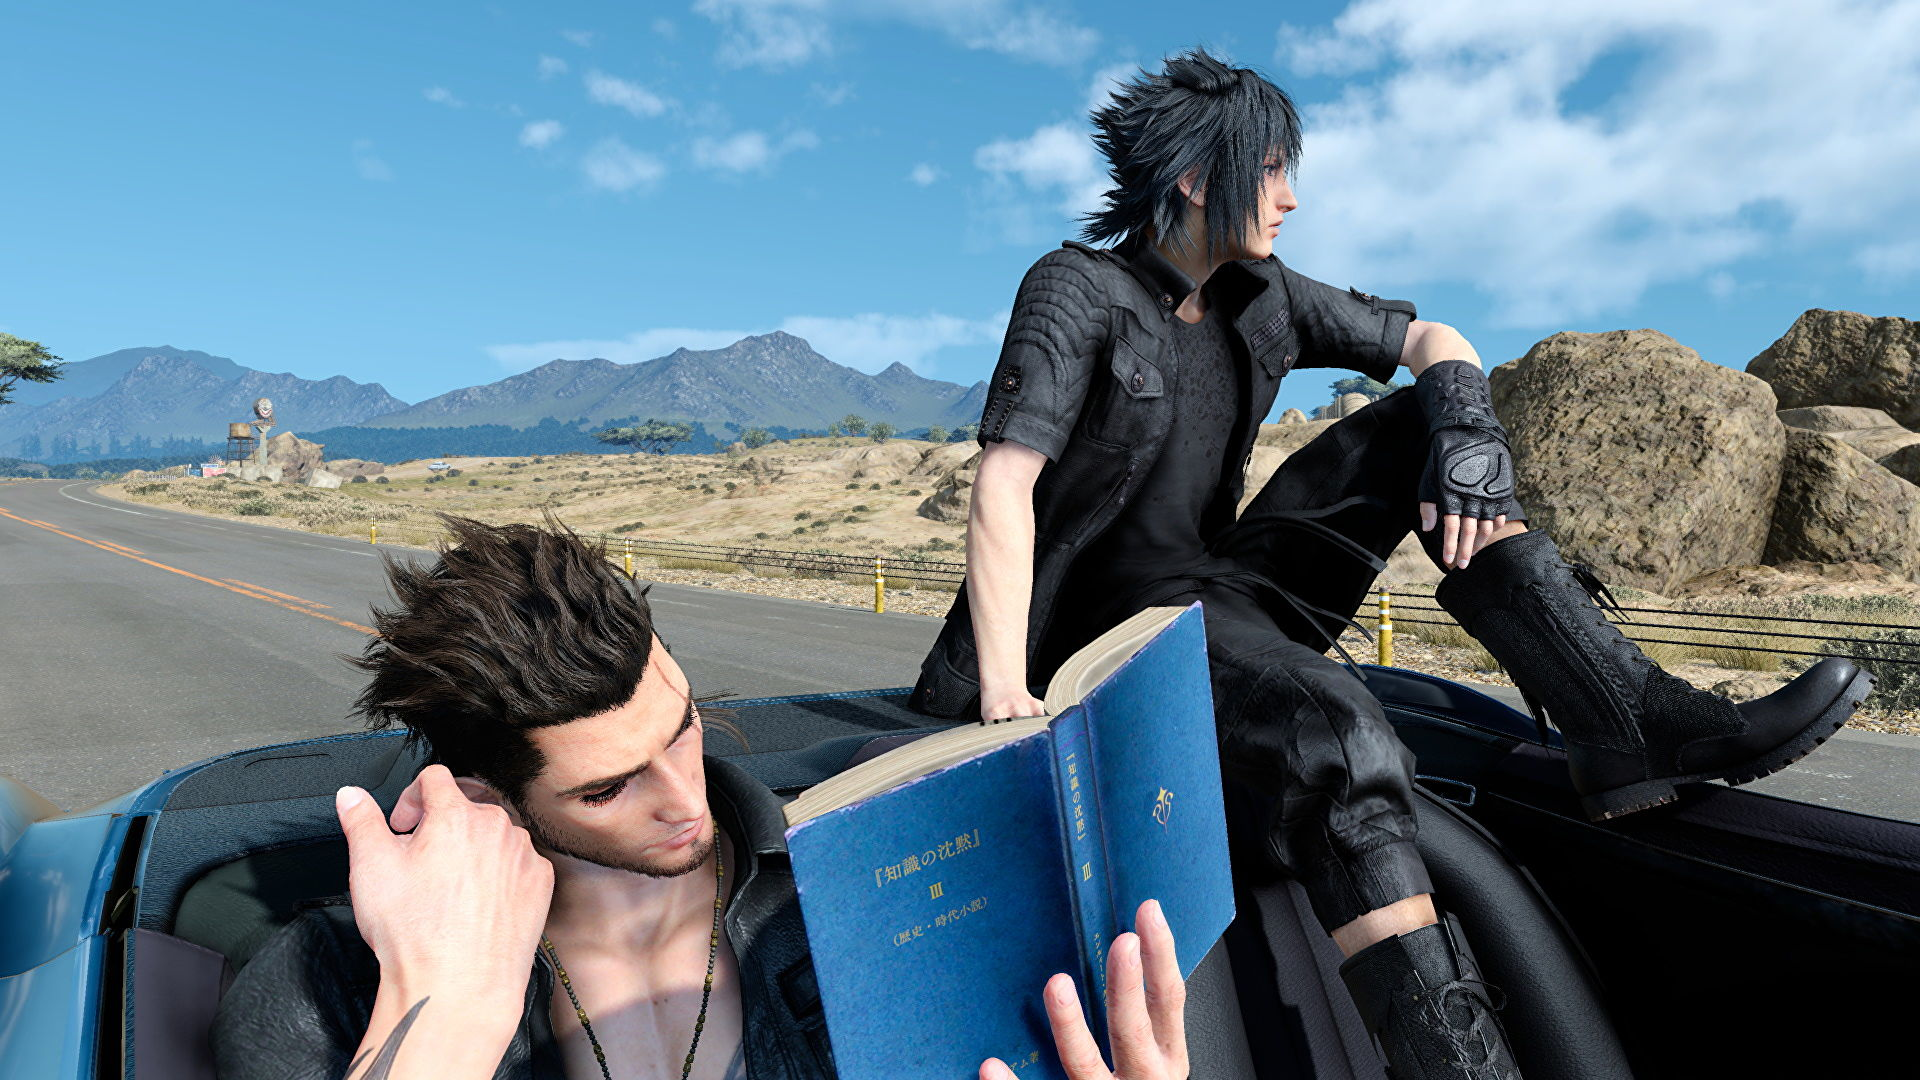 A trip in Final Fantasy XV reminded me of Albania